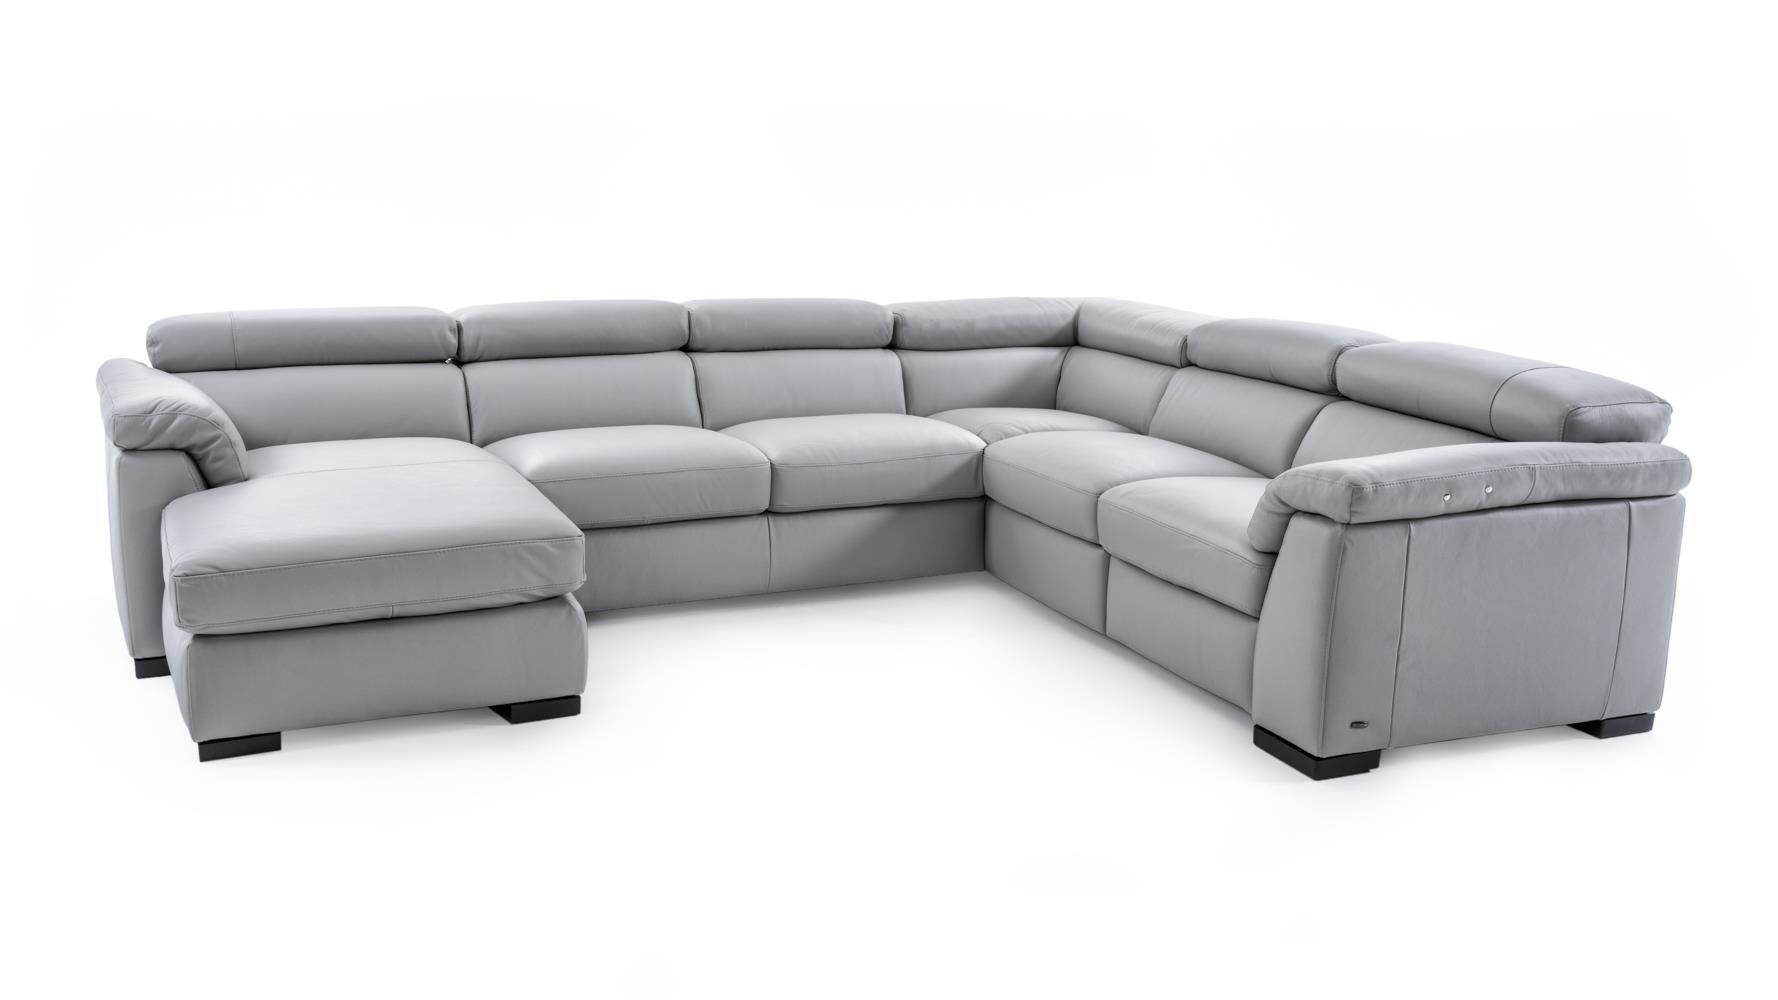 Natuzzi Editions B634 Contemporary Leather Reclining Sectional Pertaining To Natuzzi Microfiber Sectional Sofas (View 12 of 20)